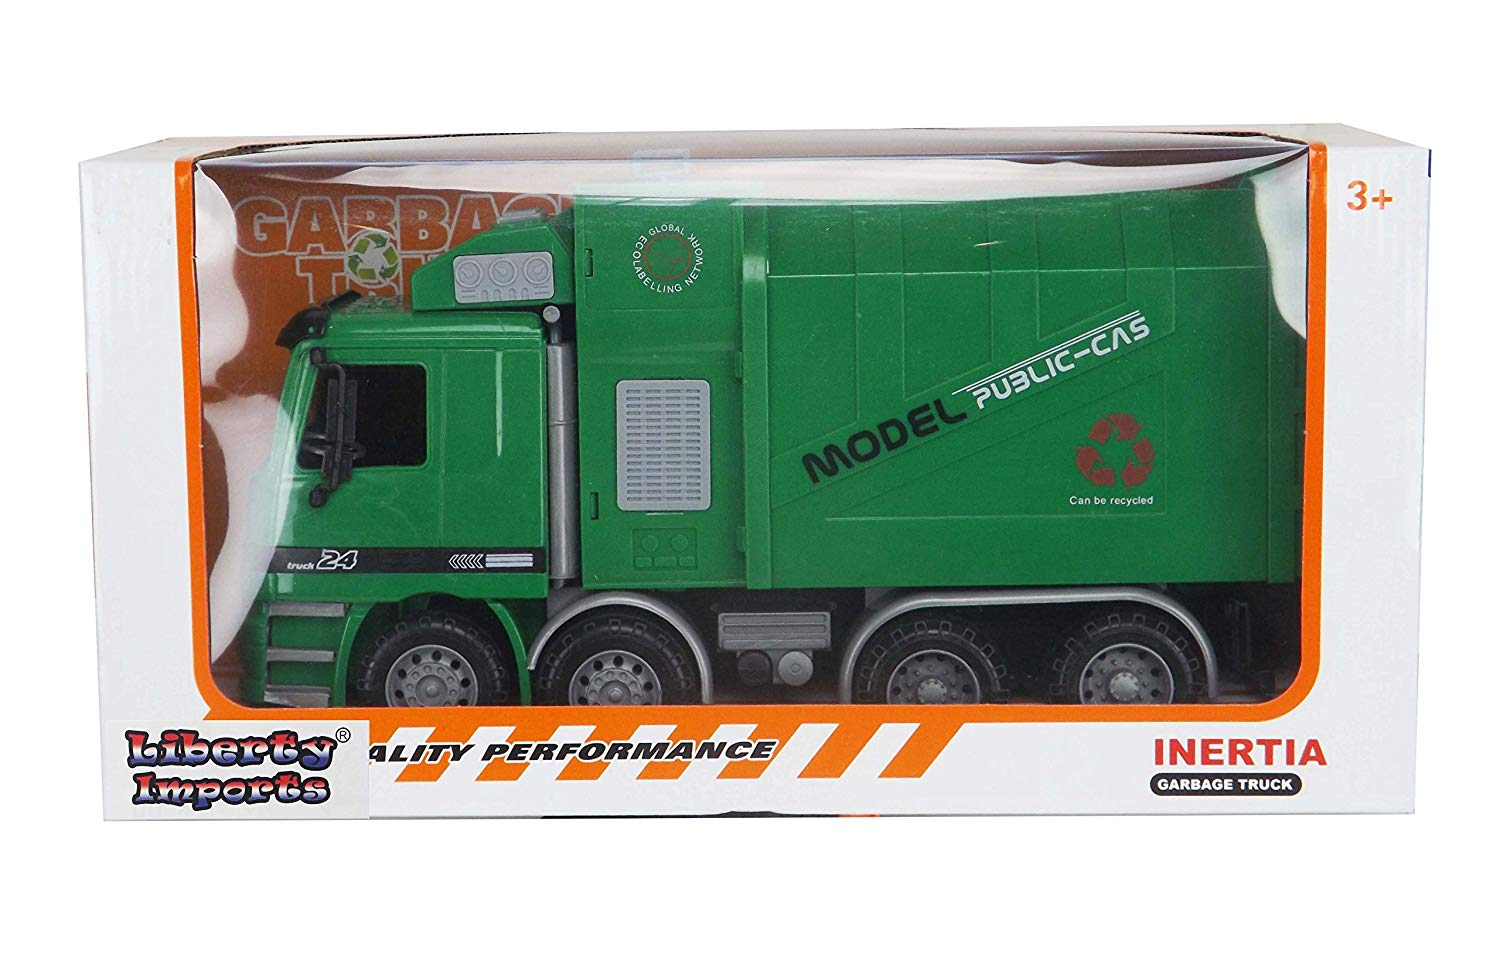 "14"" Oversized Friction Powered Recycling Garbage Truck Toy for Kids with Side Loading and Back Dump"